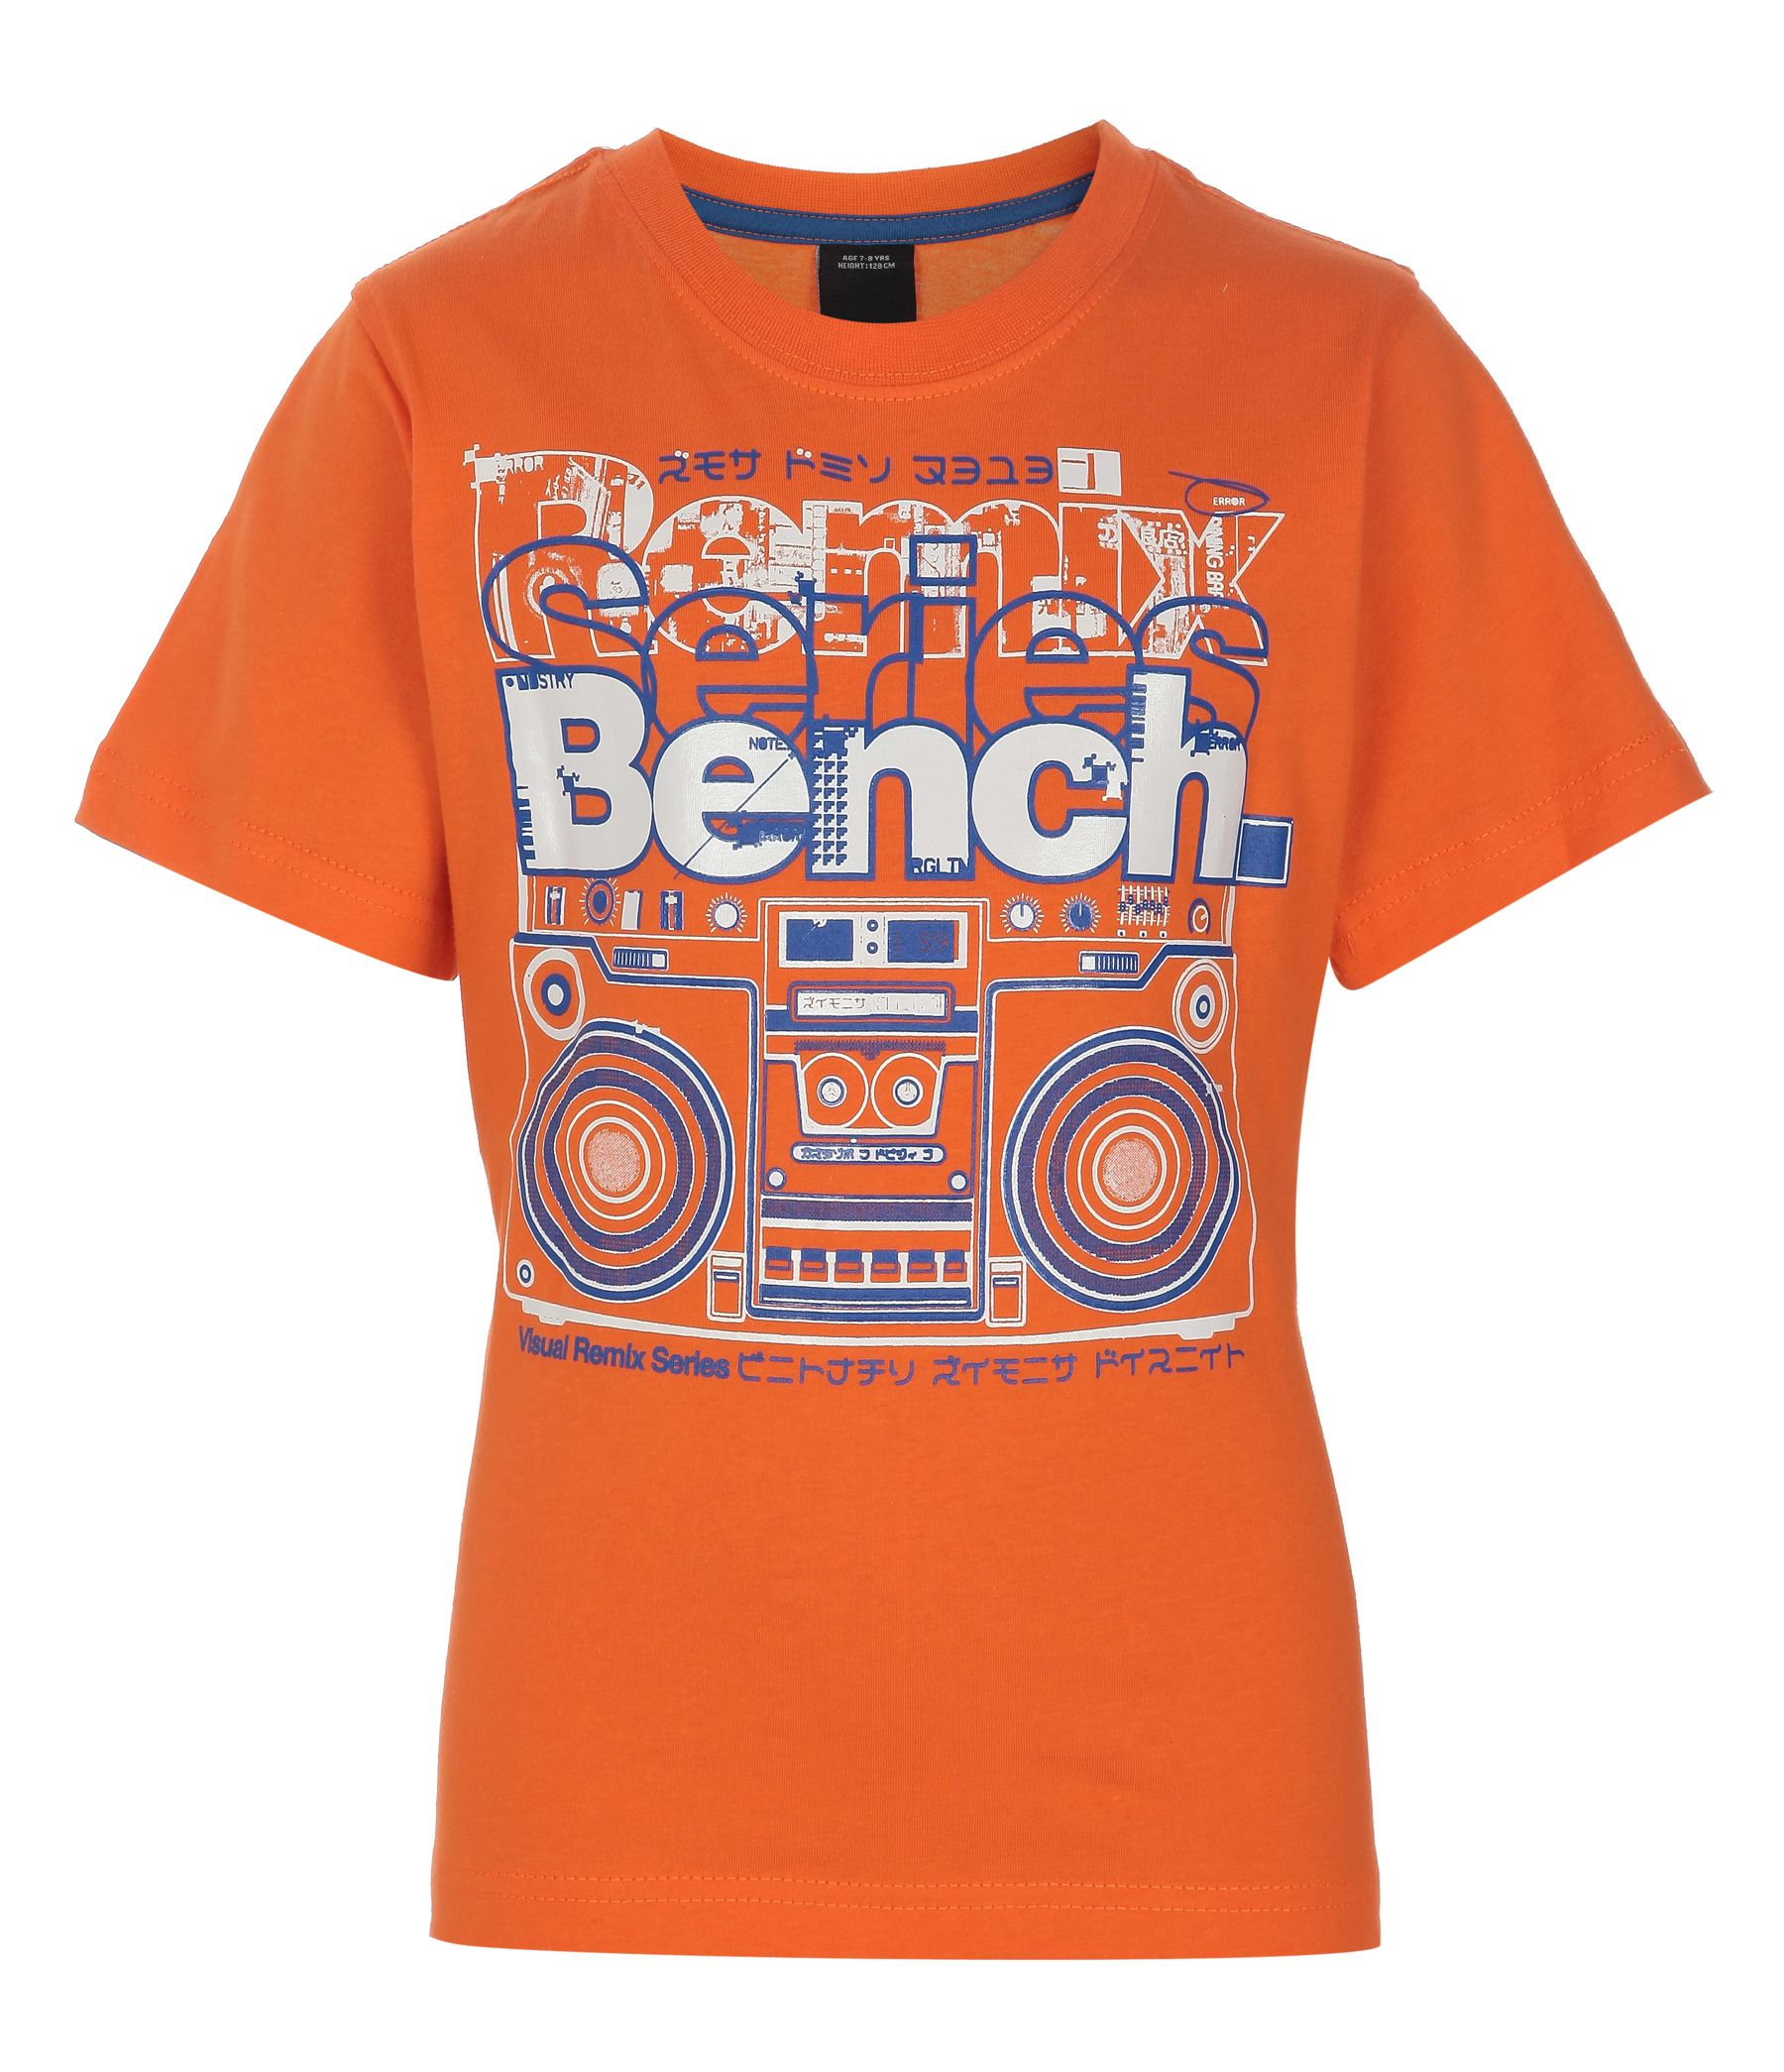 Childrens Bench Blaster t-shirt, Orange